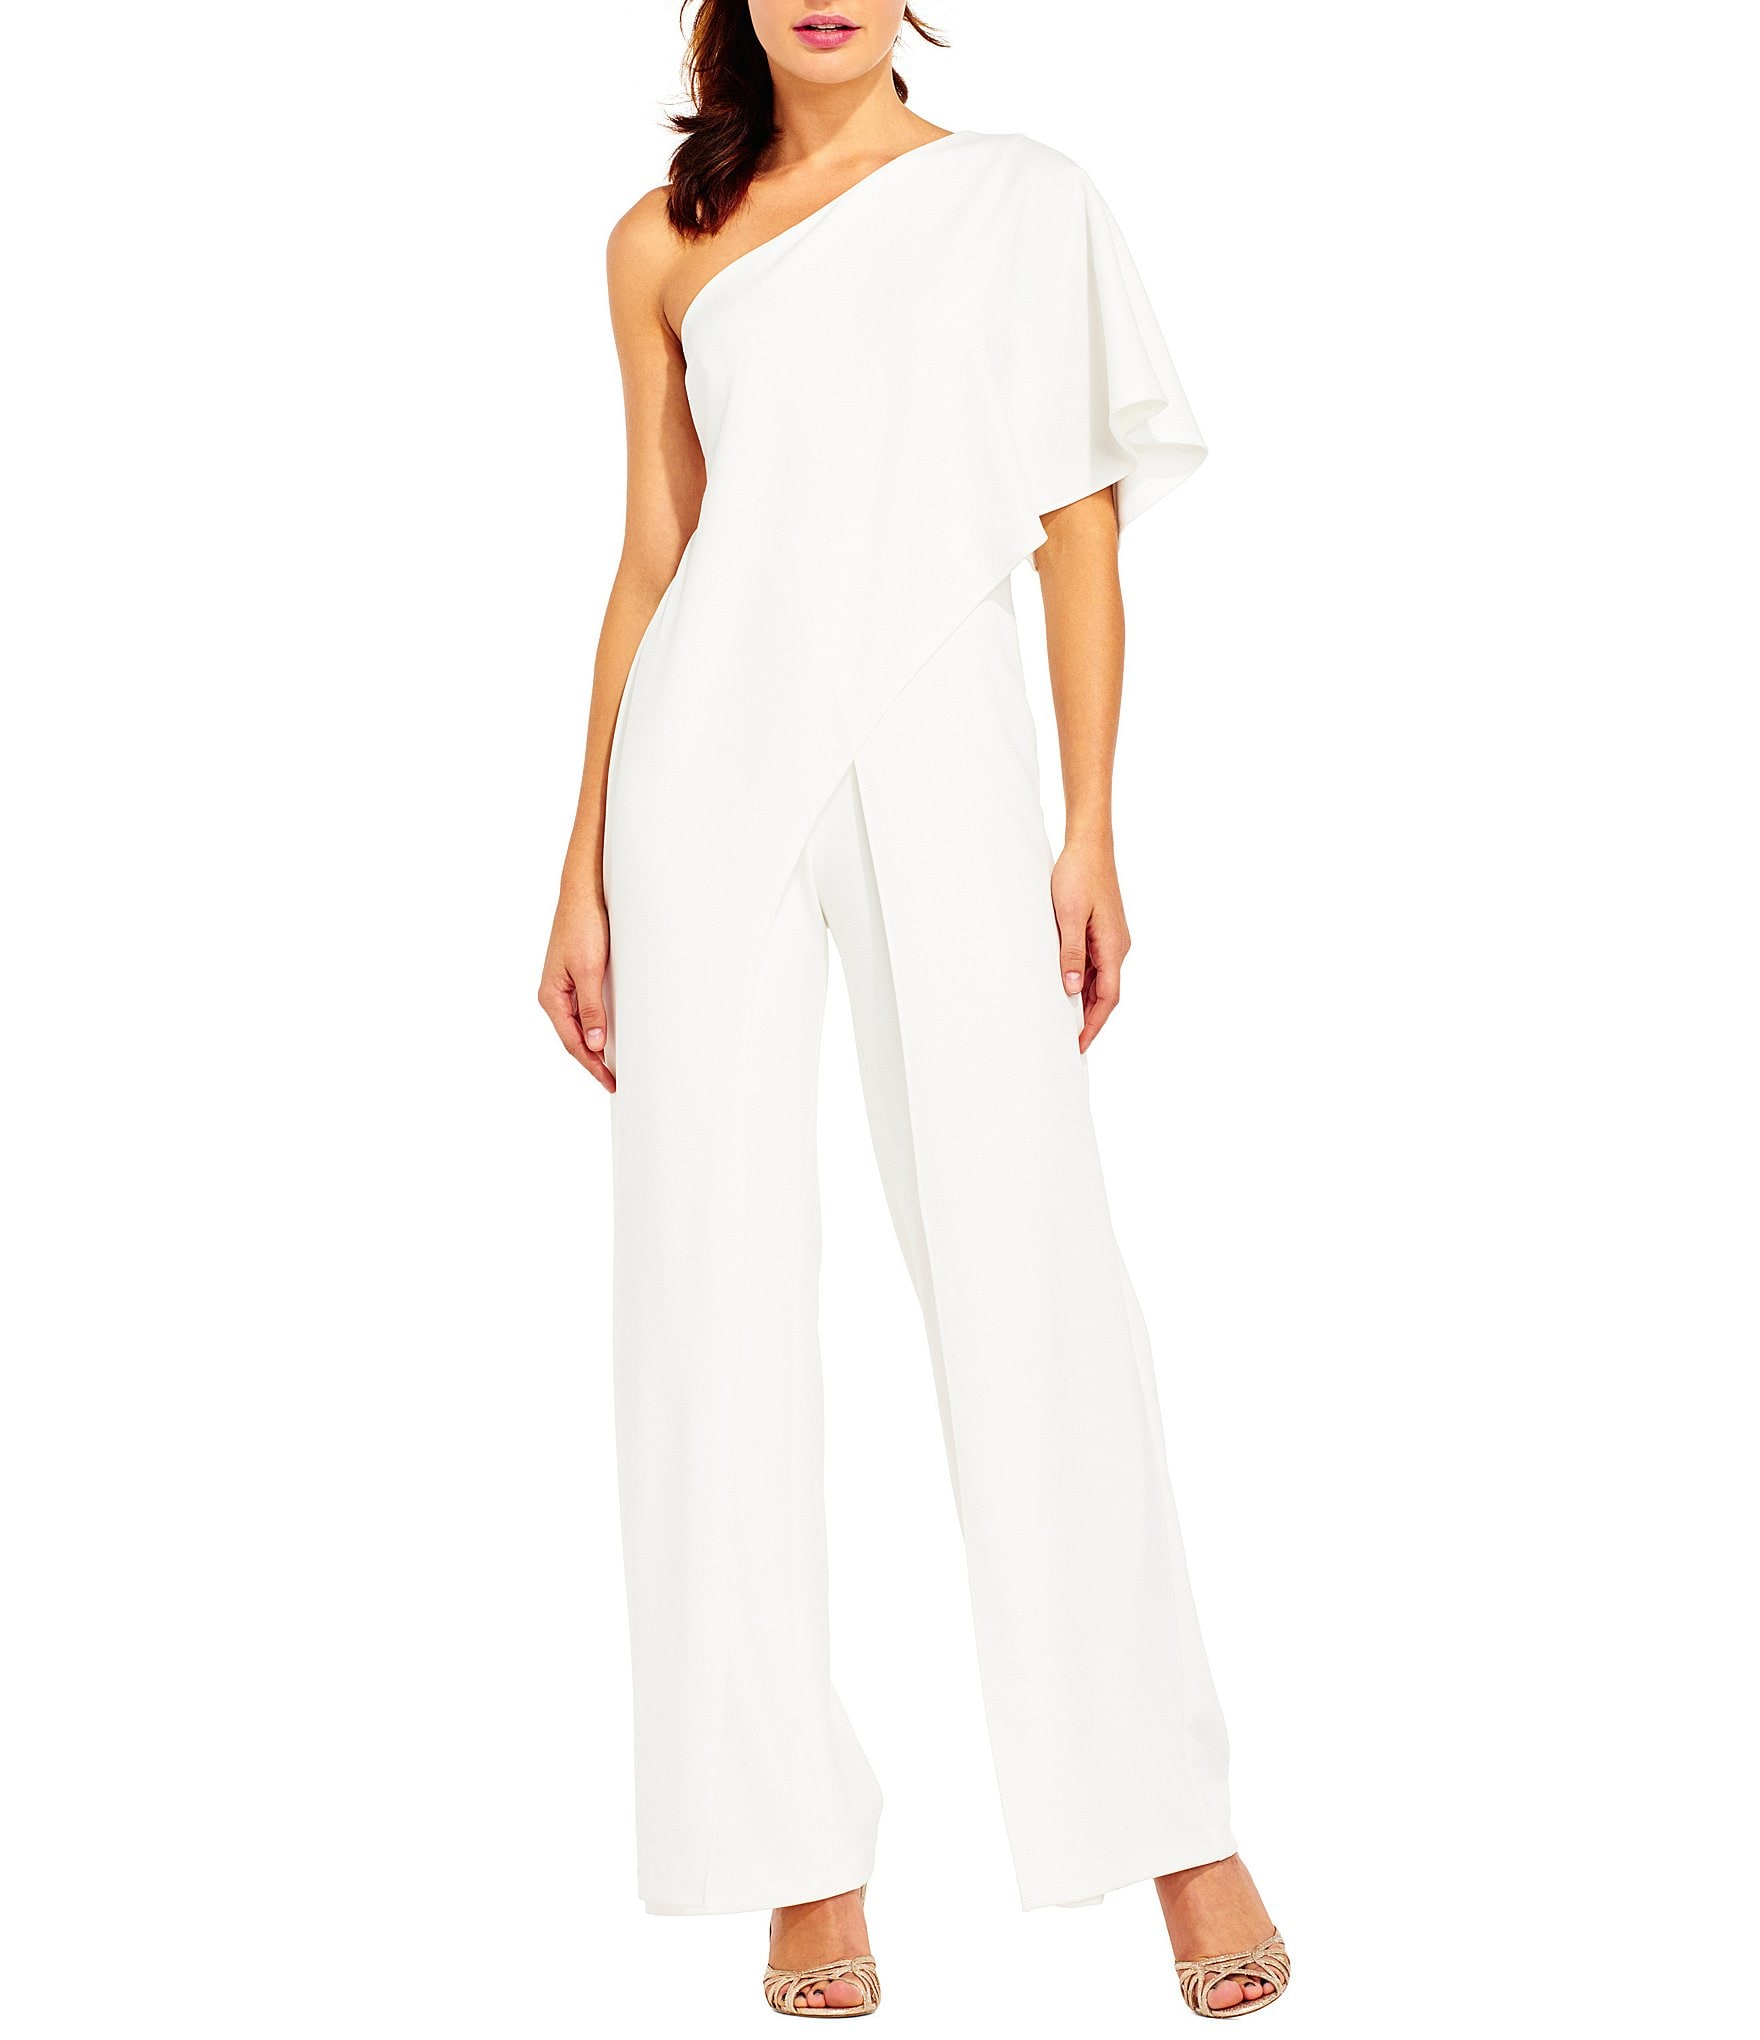 953740ab9fe5 evening: Women's Jumpsuits & Rompers | Dillard's